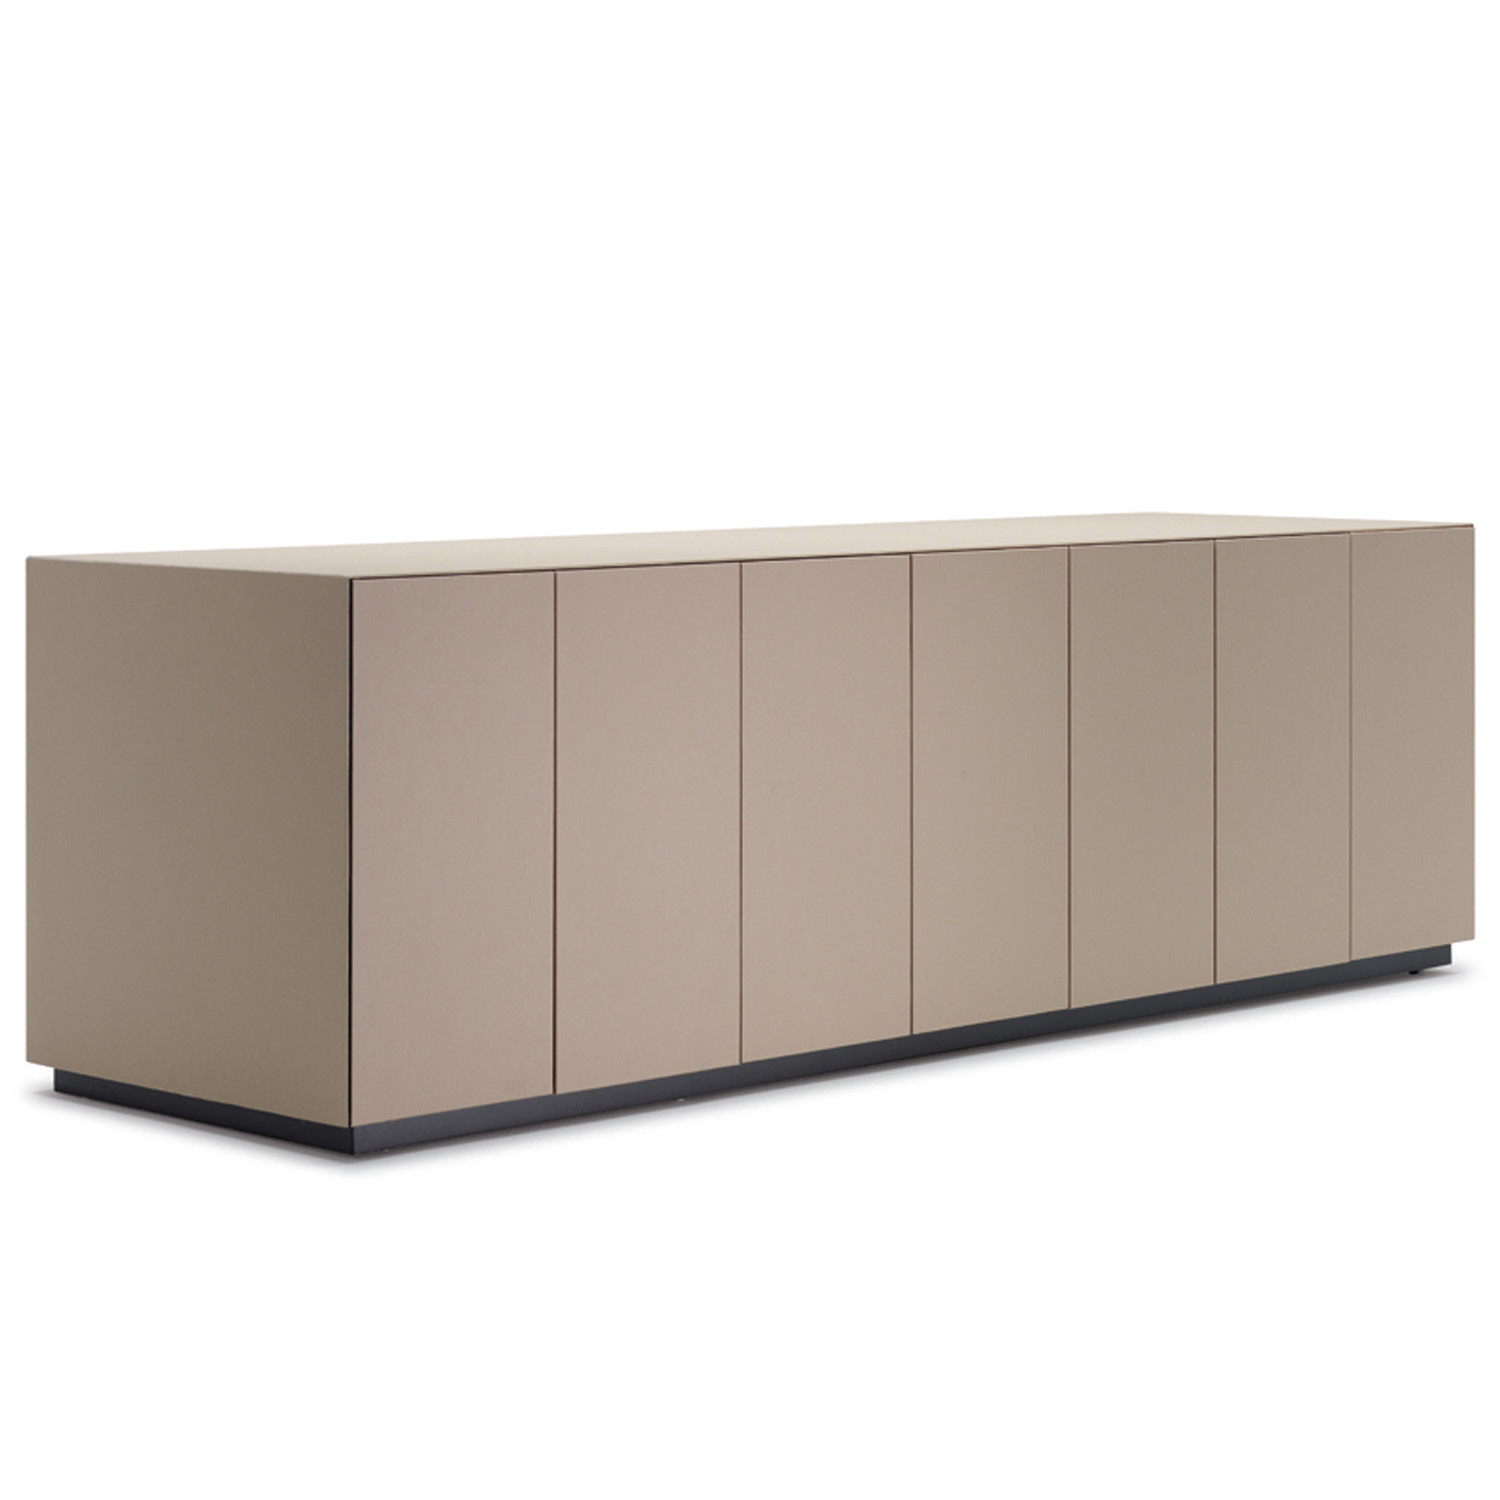 CEO Cube Office Storage Cabinet by Poltrona Frau